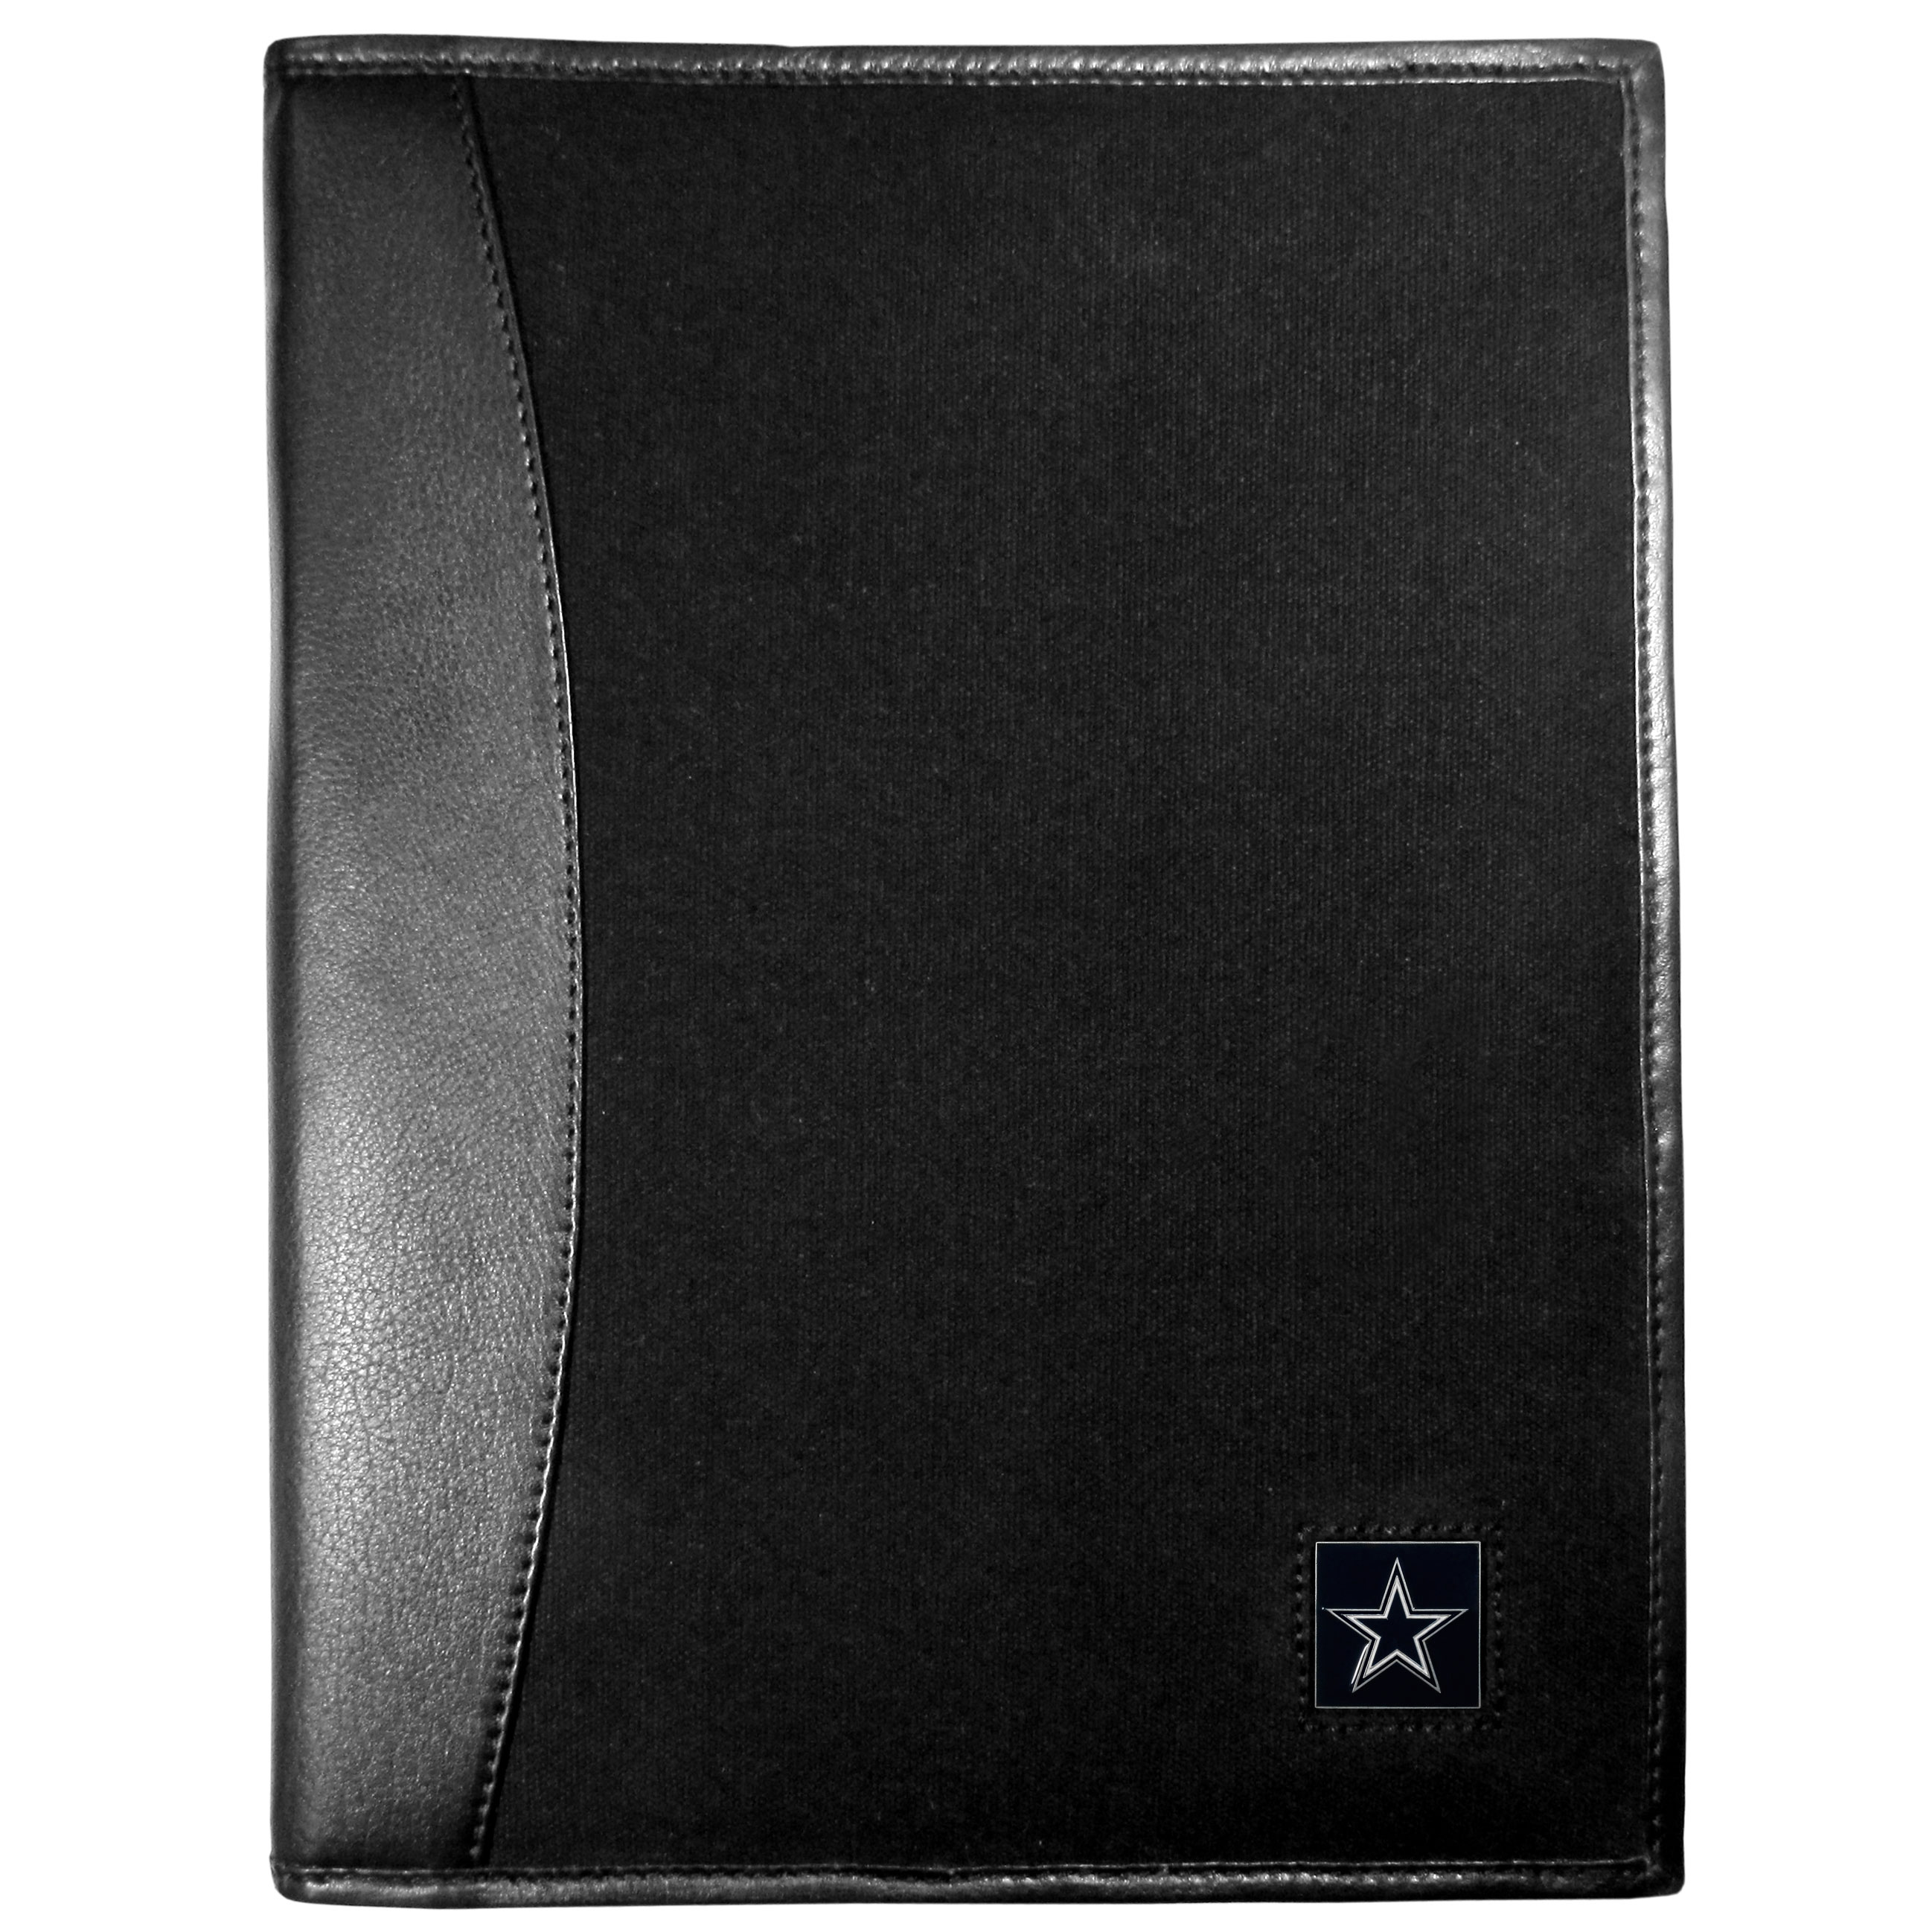 Dallas Cowboys Leather and Canvas Padfolio - Our leather and canvas padfolio perfectly blends form and function. The attractive portfolio is bound in fine grain leather with an attractive canvas finish and the interior is a soft nylon. This high quality business accessory also features a fully cast metal Dallas Cowboys emblem that is subtly set in the corner of the organizer. It is packed with features like 6 card slots for badges, business cards, hotel keys or credit cards and ID with a large pocket for loose papers and a writing tablet slot making it a must-have for the professional on the go.